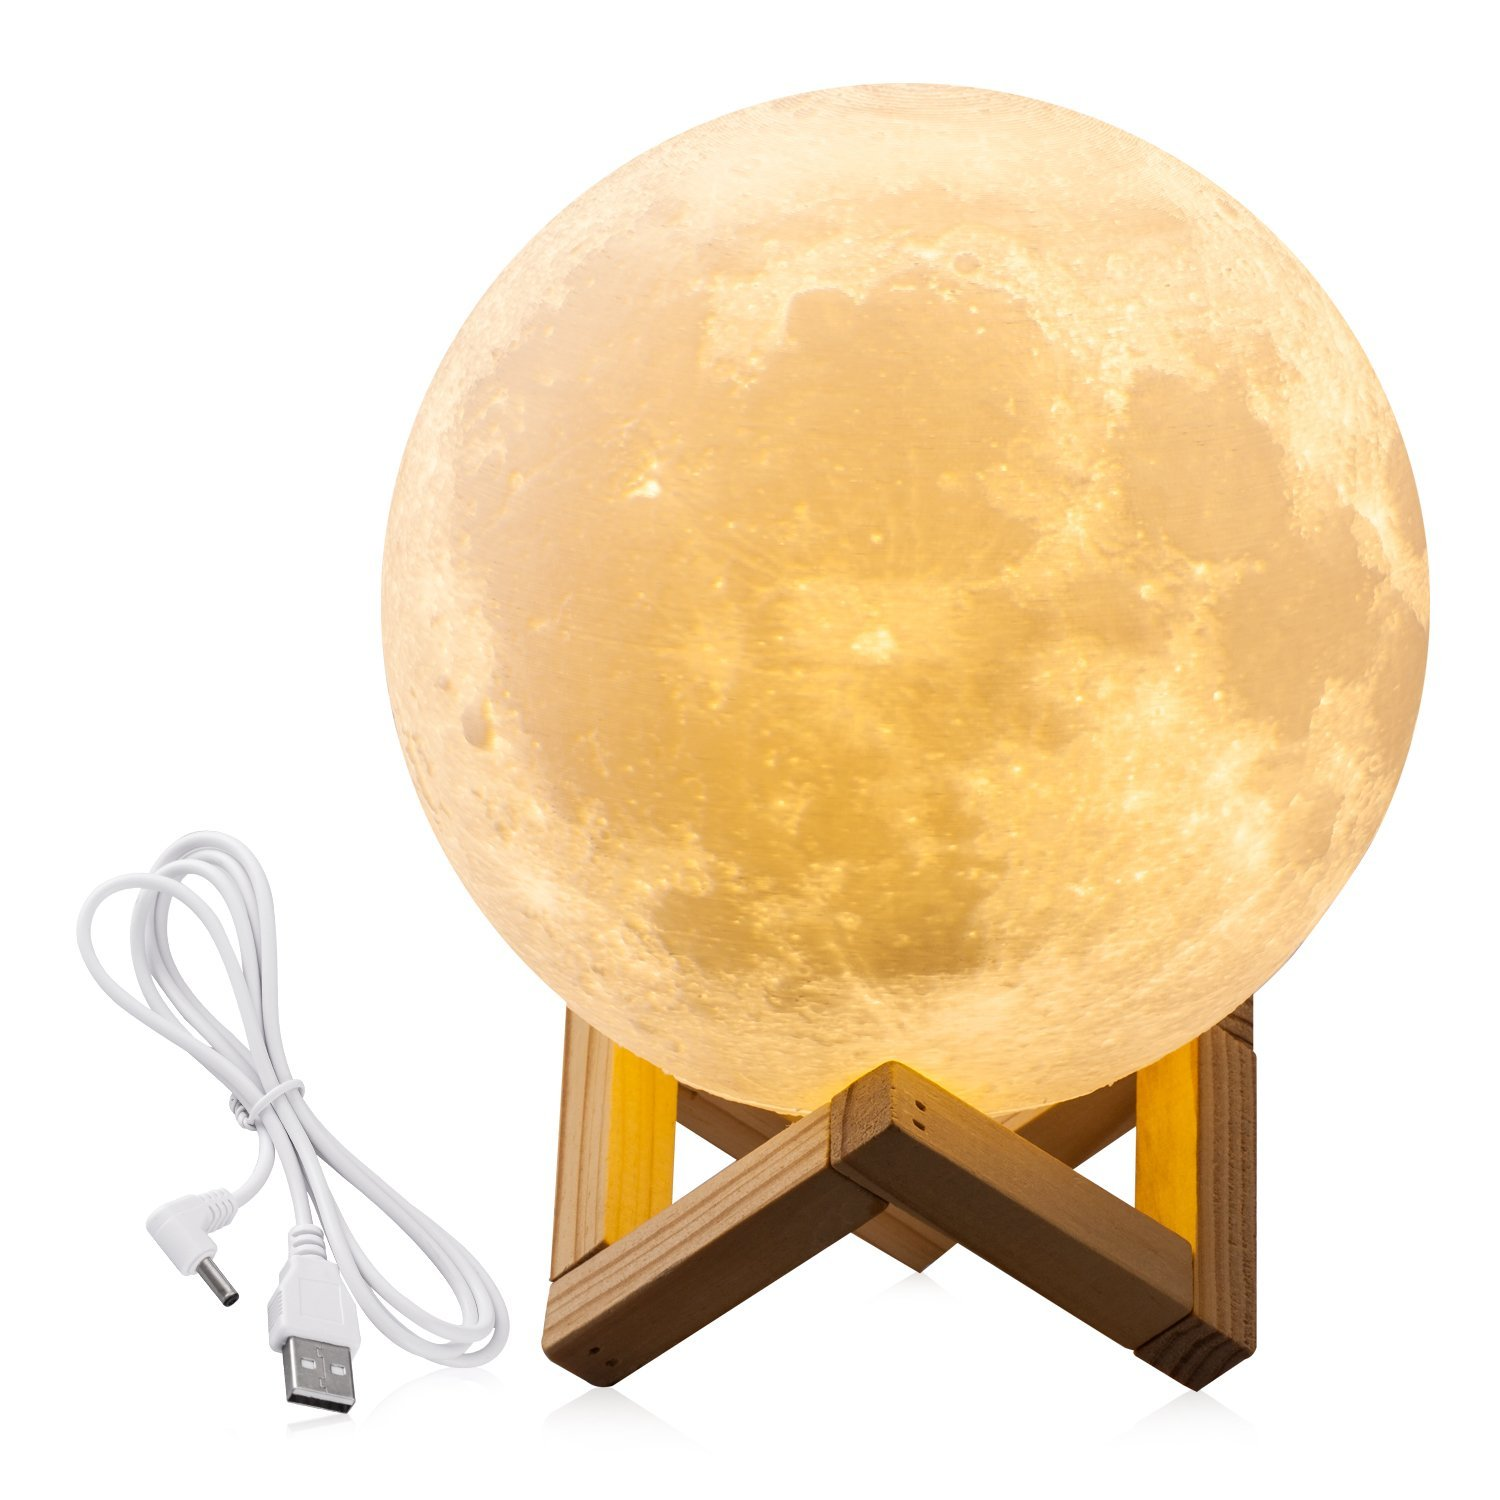 7.1INCHS CPLA Lighting Night Light LED 3D Printing Moon Lamp, Lunar Lamp Warm and Cool White Dimmable Touch Control Brightness w